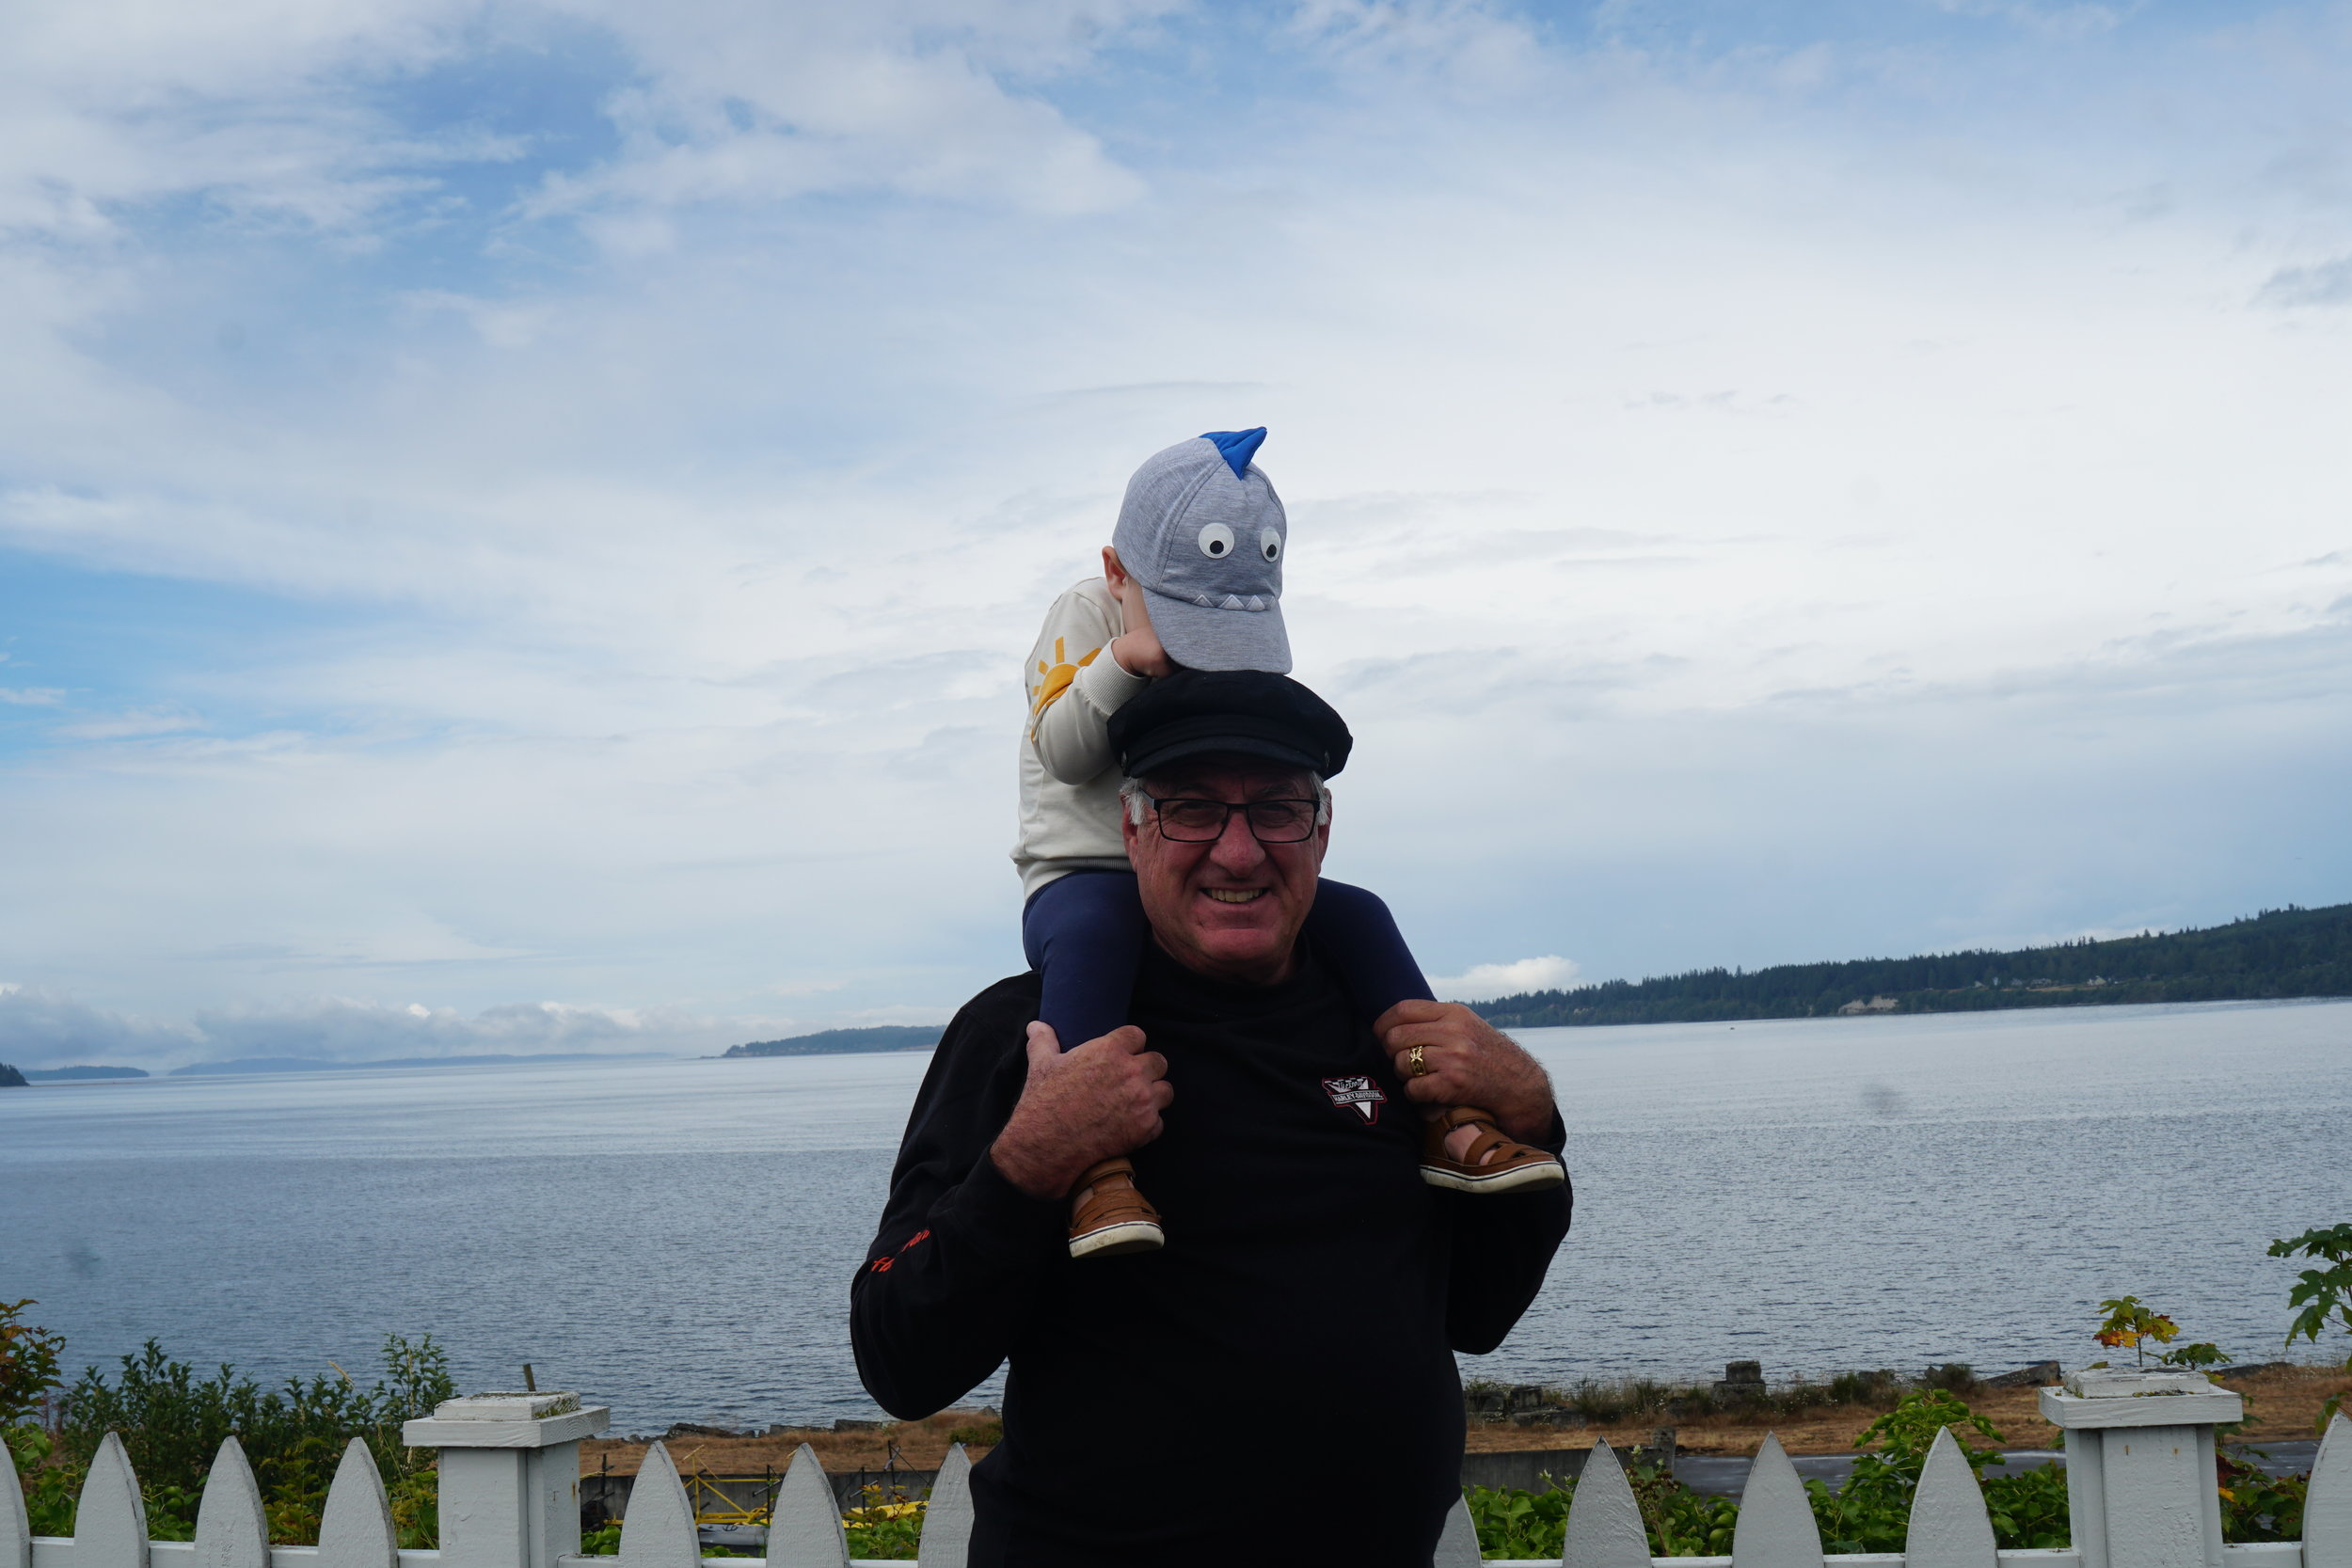 Paul and Rufus in Port Gamble, WA, on the Puget Sound